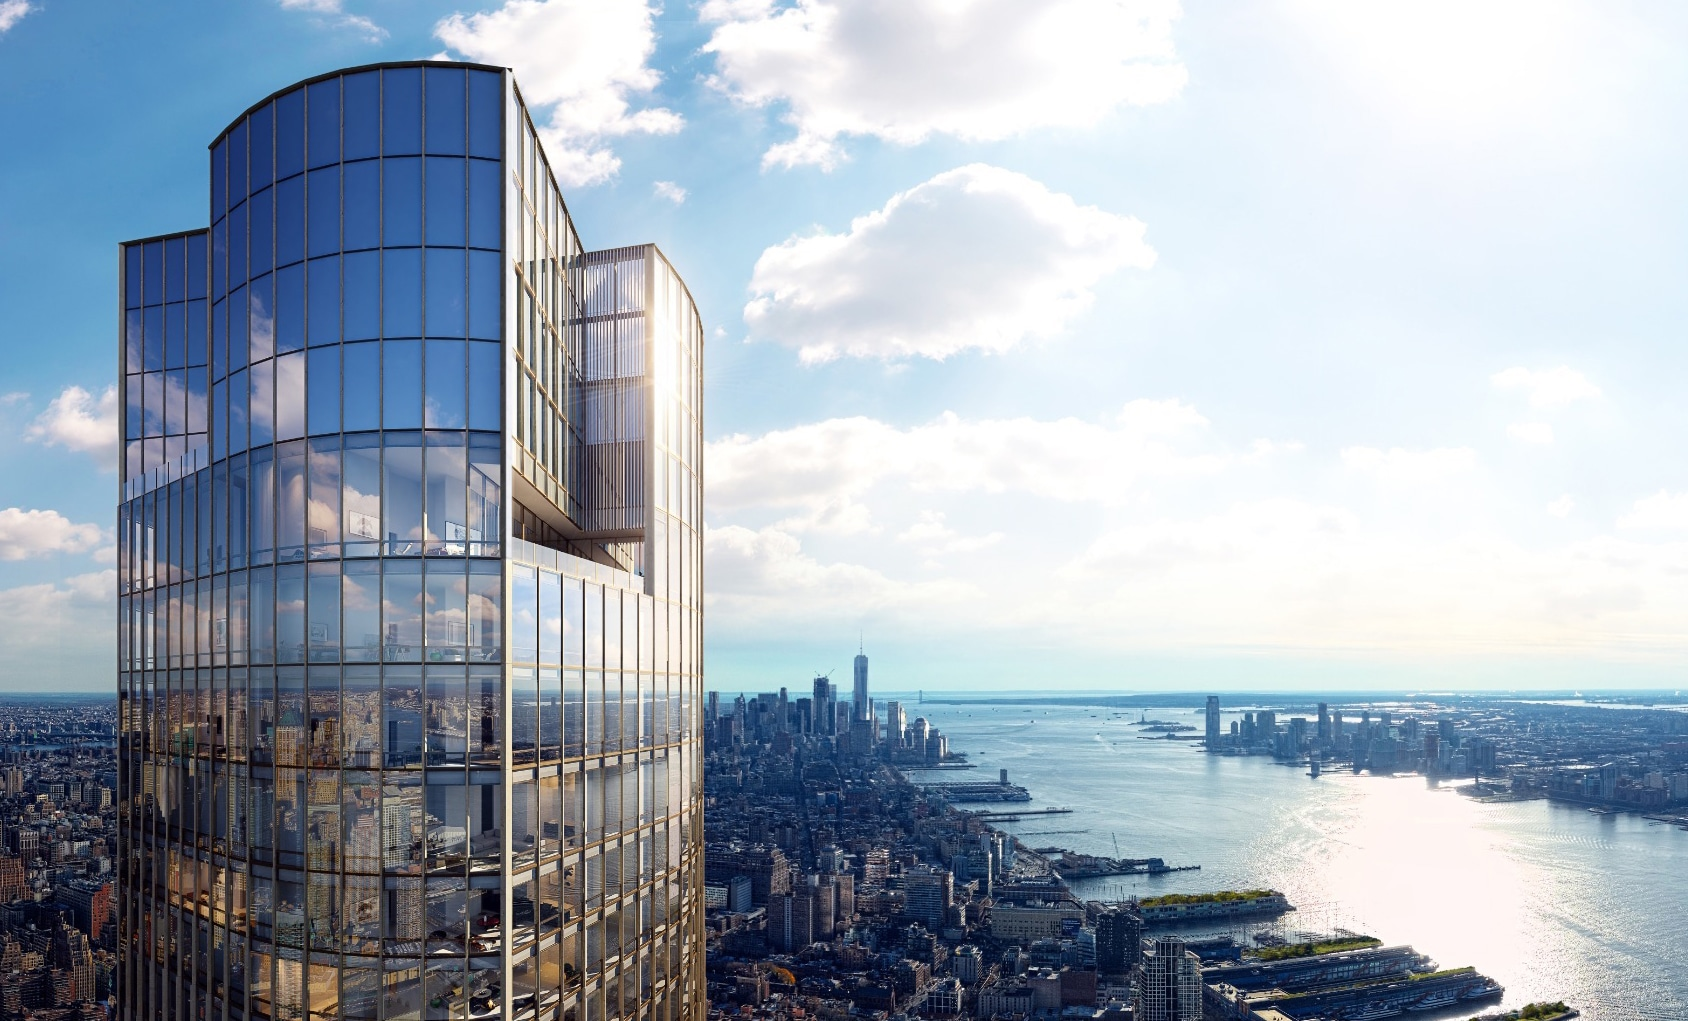 Exterior aerial view of 35 Hudson Yards condominiums with clear blue skies in NYC. Has riverfront view and window paneling.